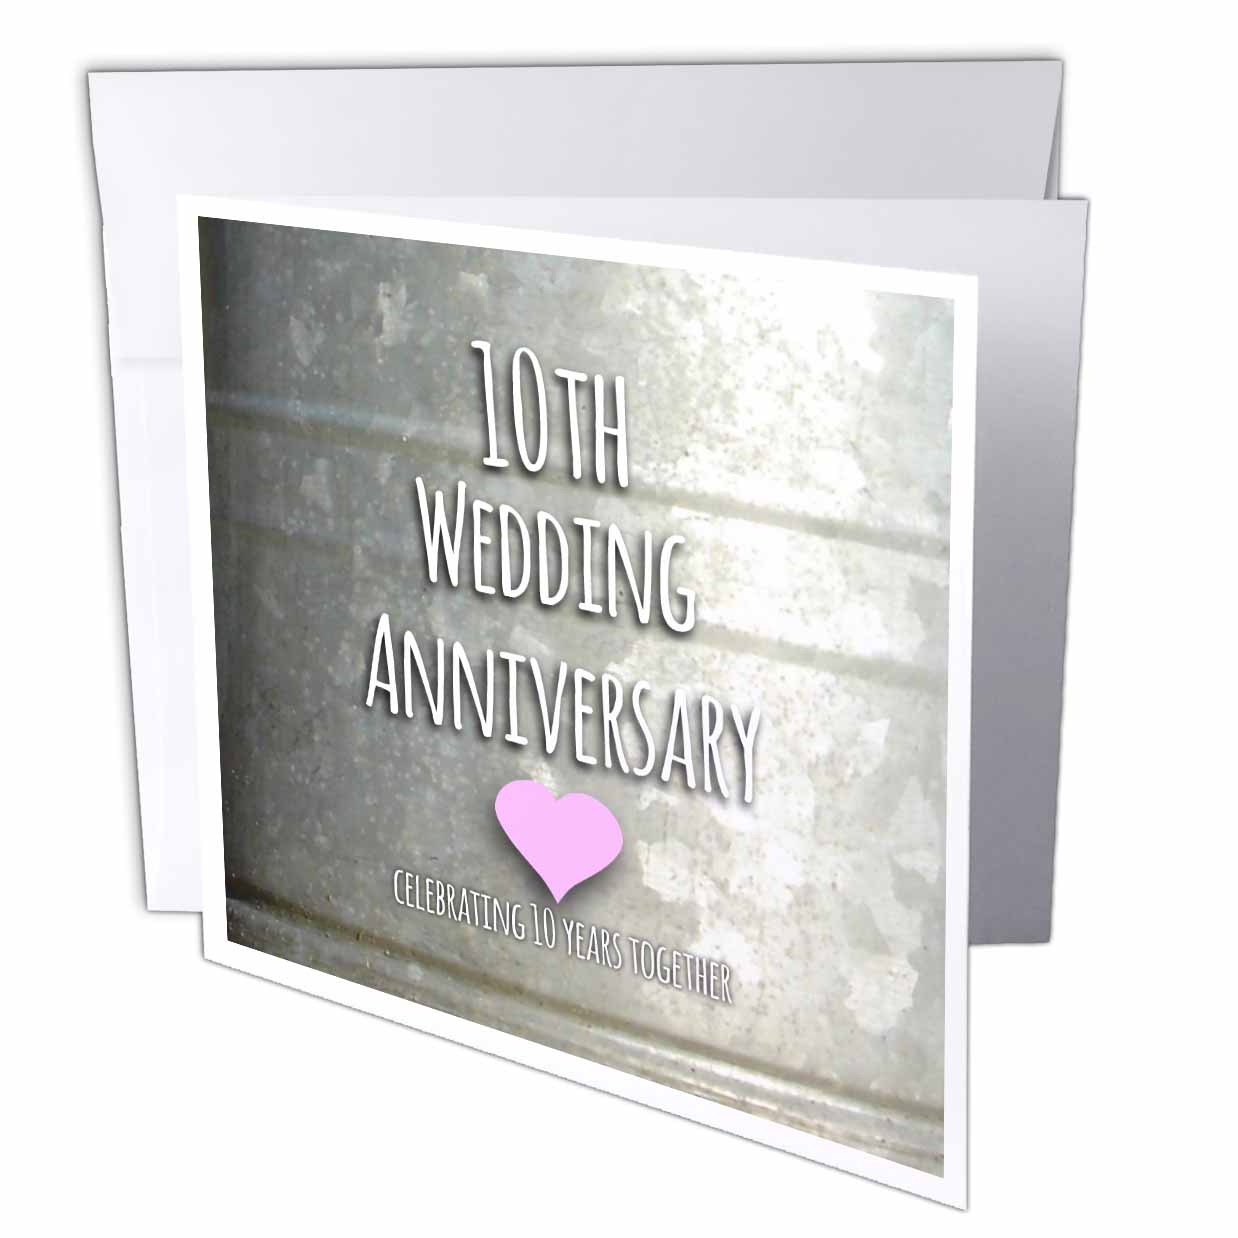 10 Year Wedding Anniversary Tin Gifts: 3dRose 10th Wedding Anniversary Gift